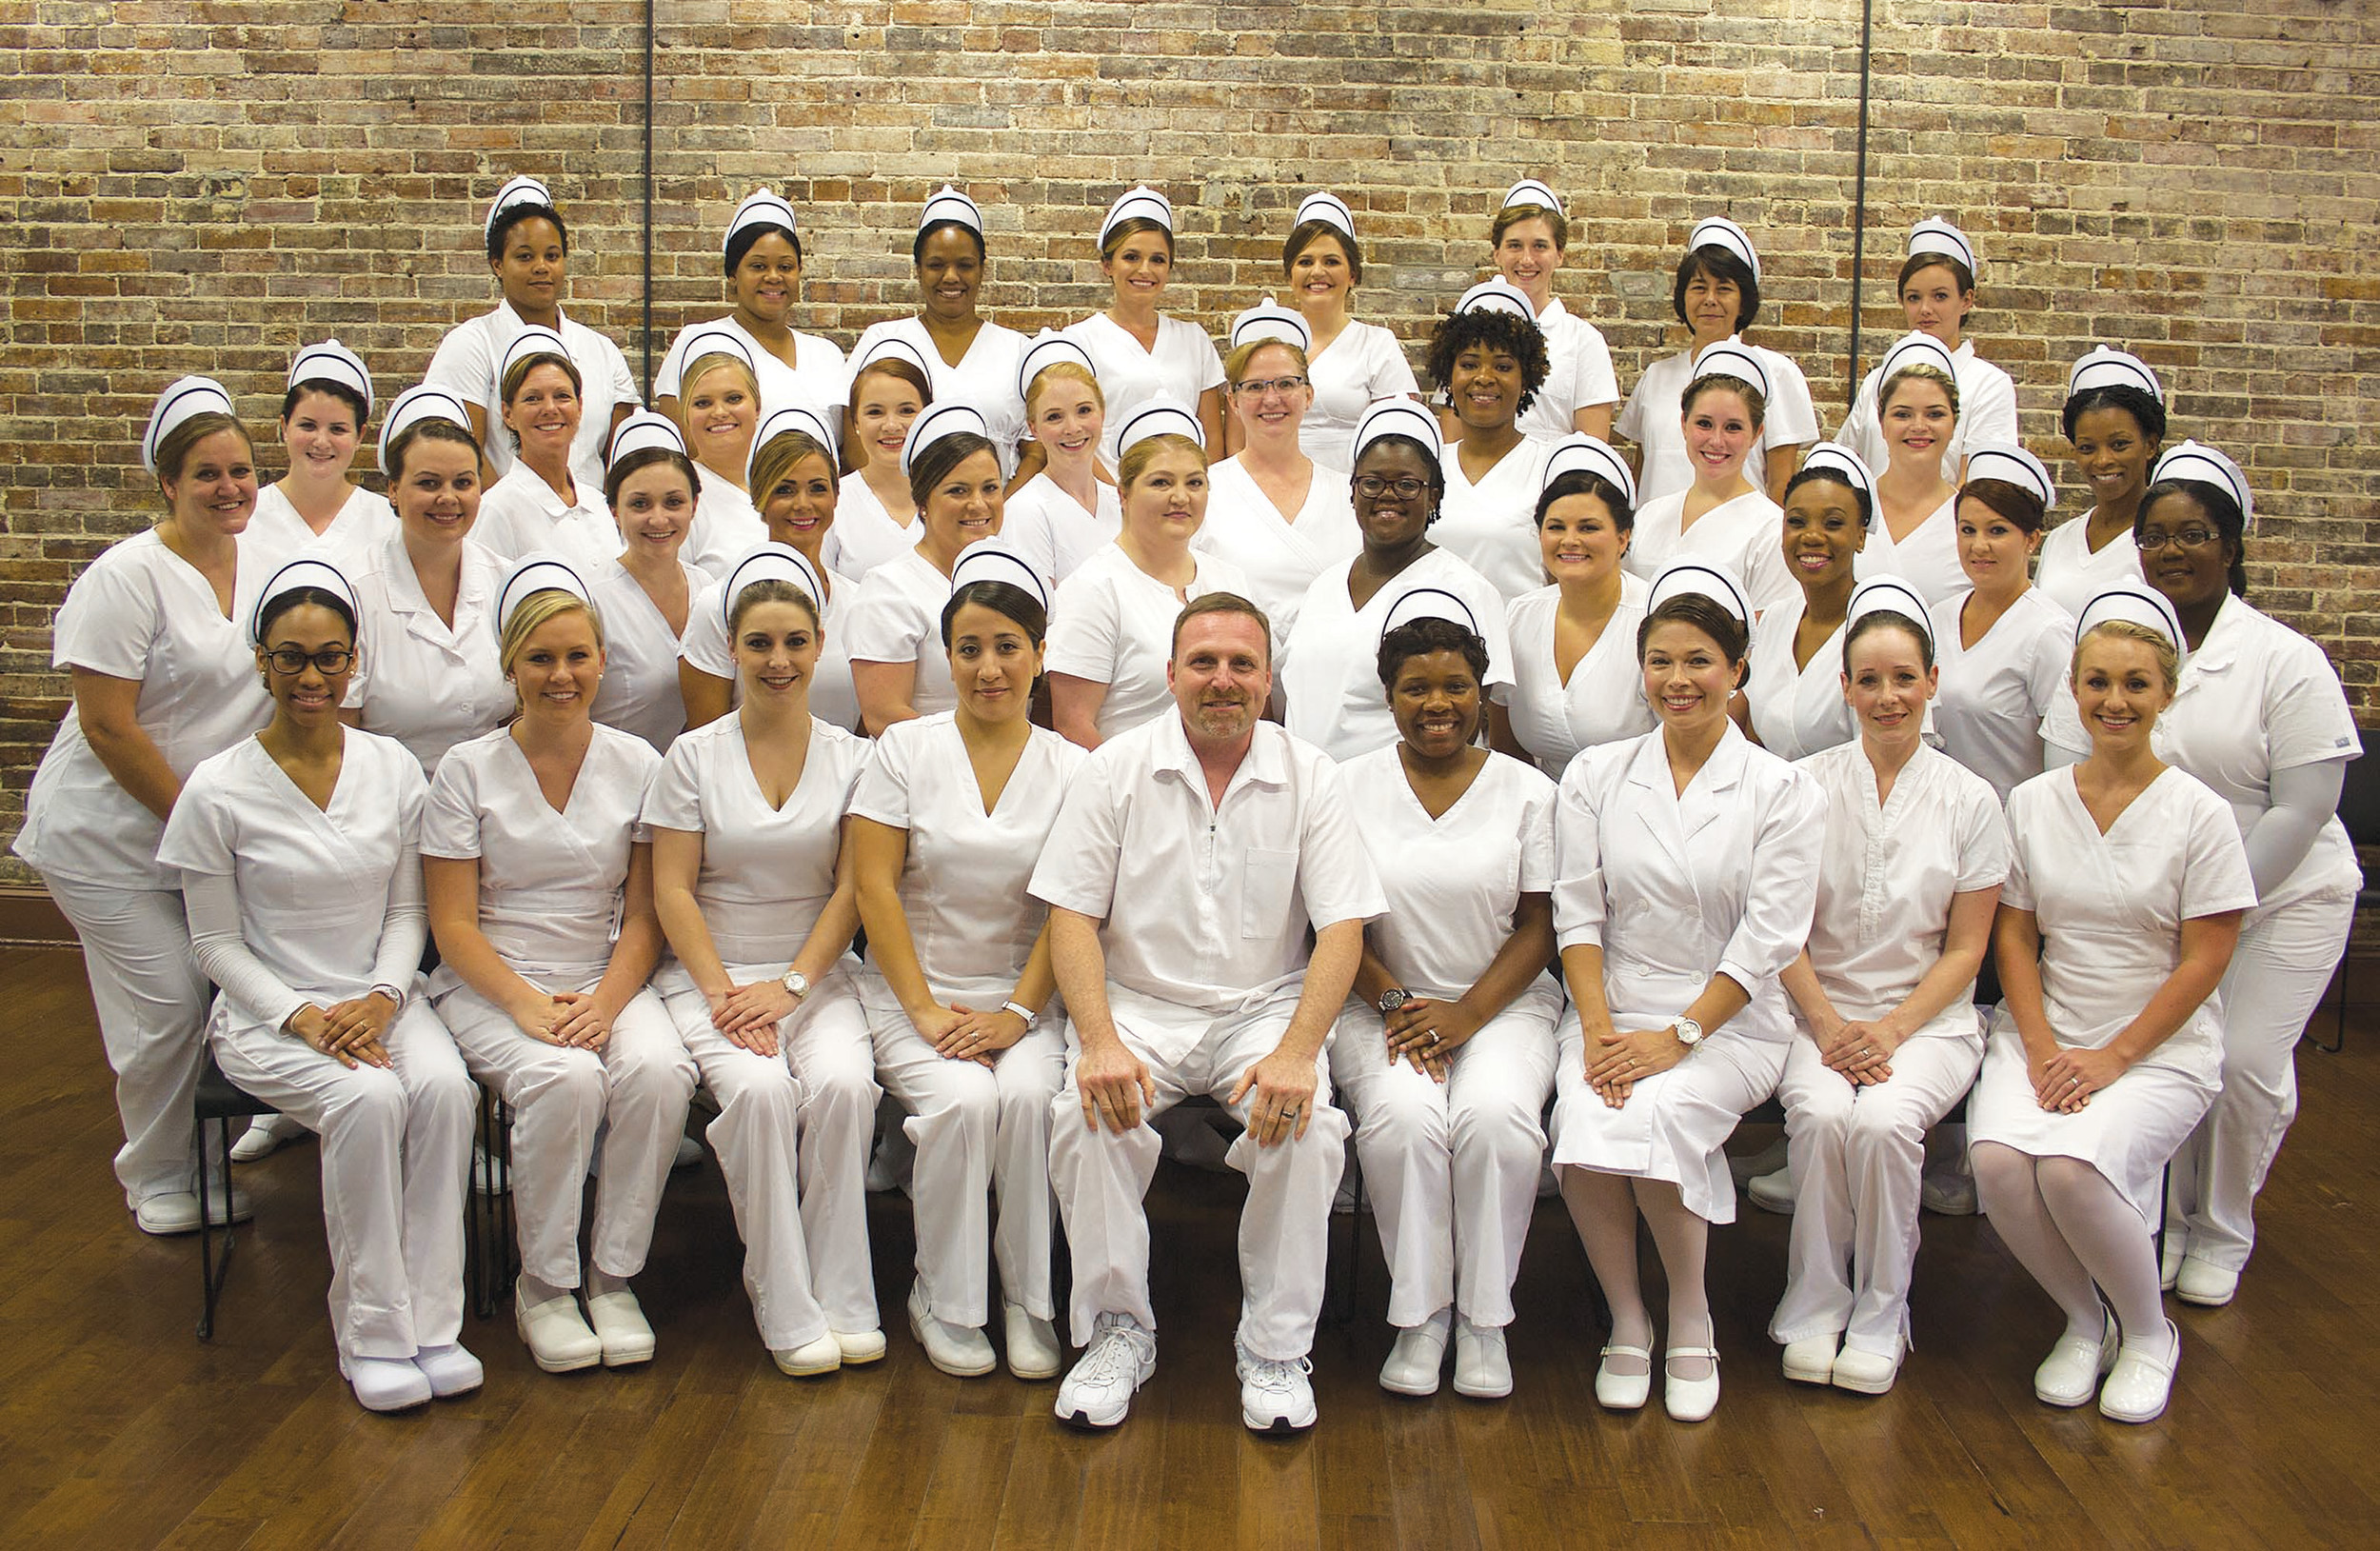 Central Carolina Technical College pinned 38 new nurses at a ceremony held on Aug. 2 at Sumter Opera House.